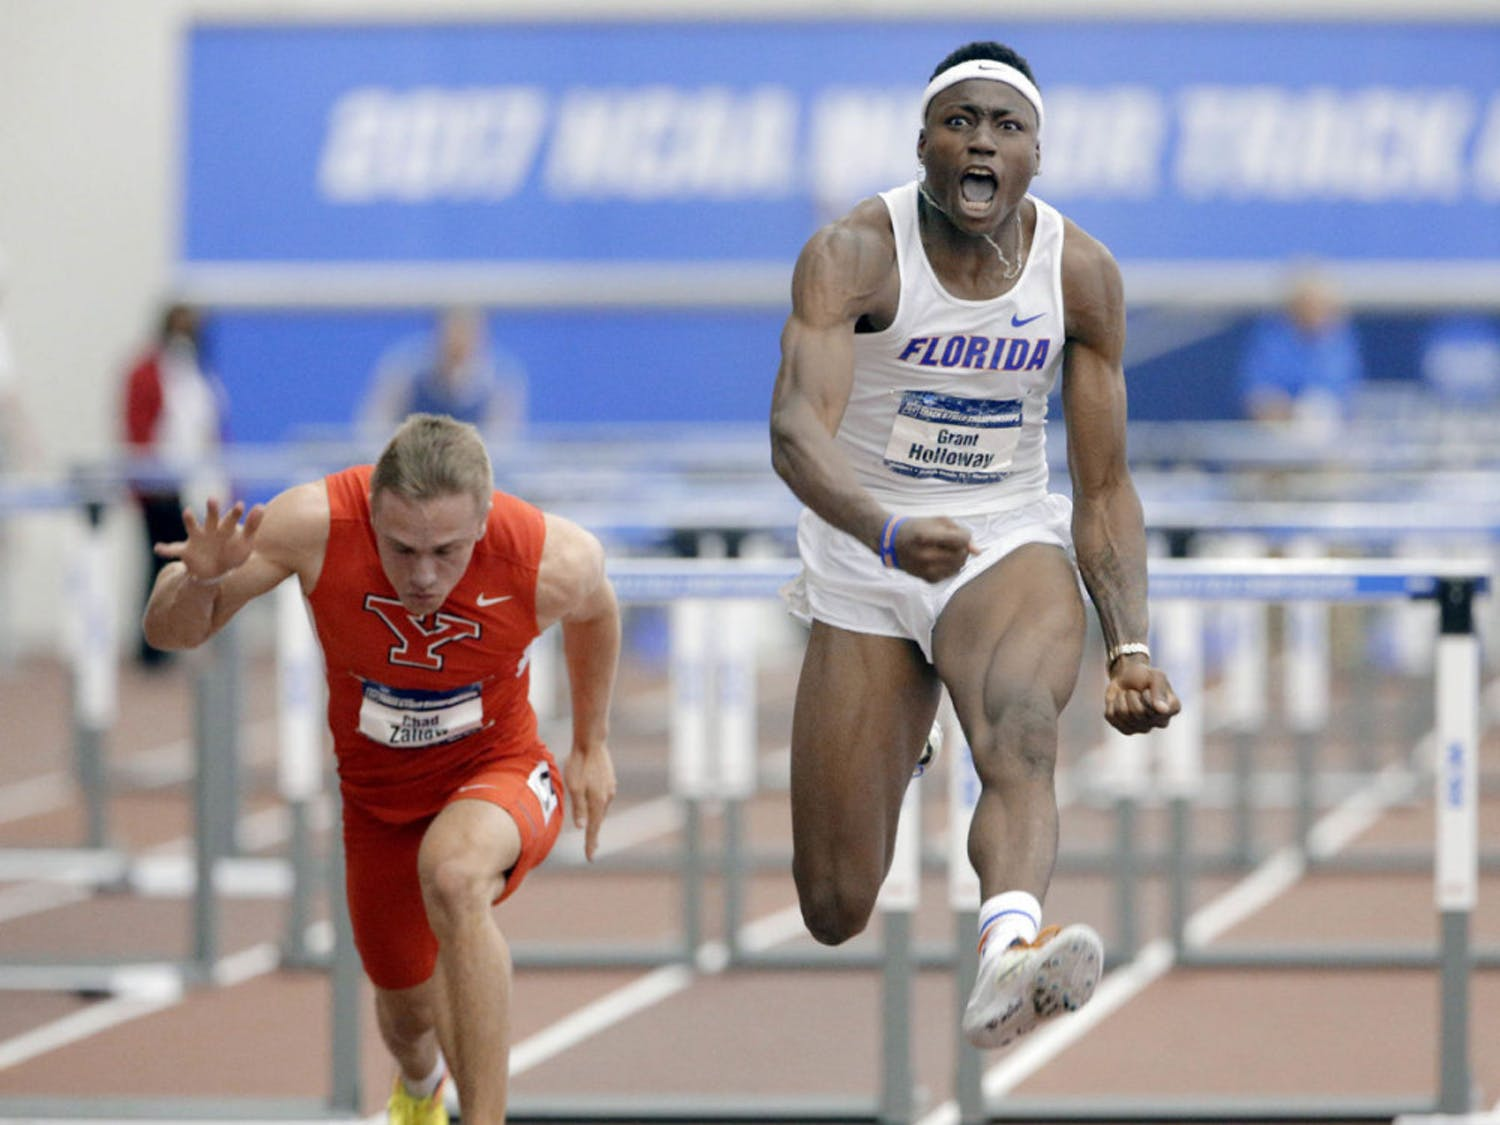 Sophomore Grant Holloway will defend his NCAA Championship title on Friday in Eugene, Oregon